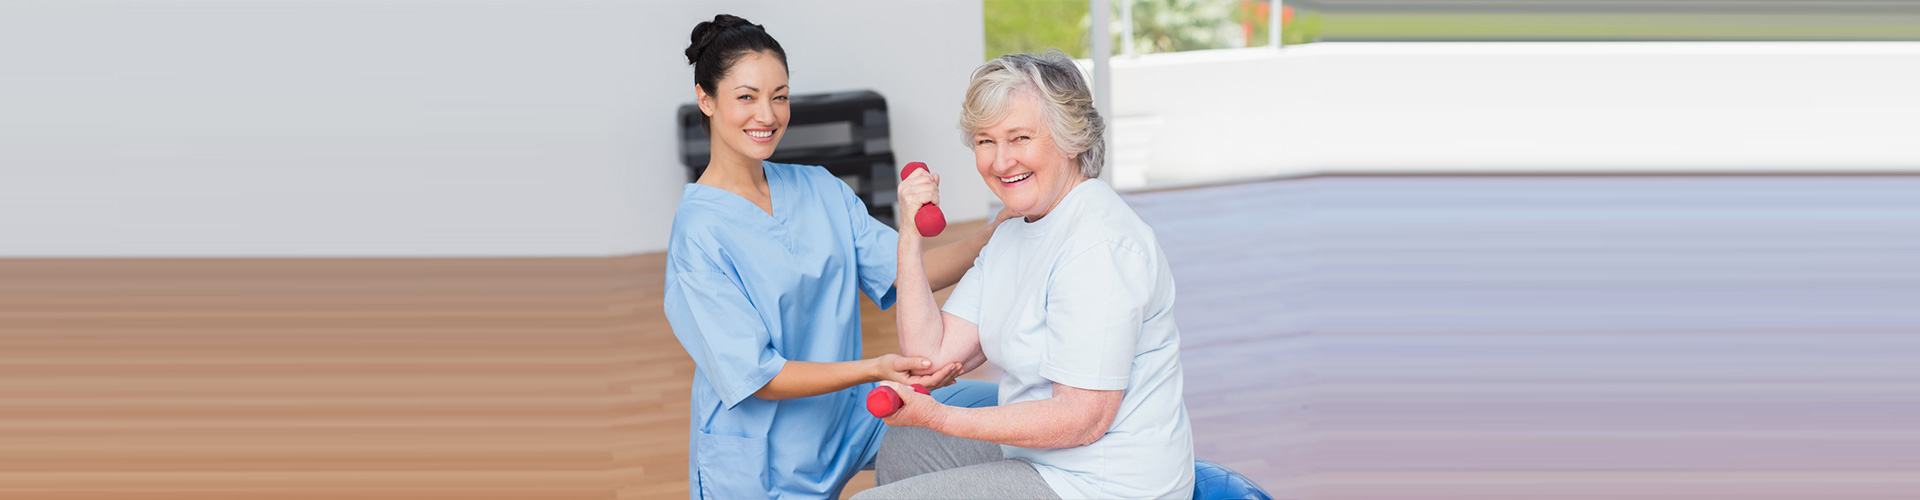 caretaker helping old woman with dumbells